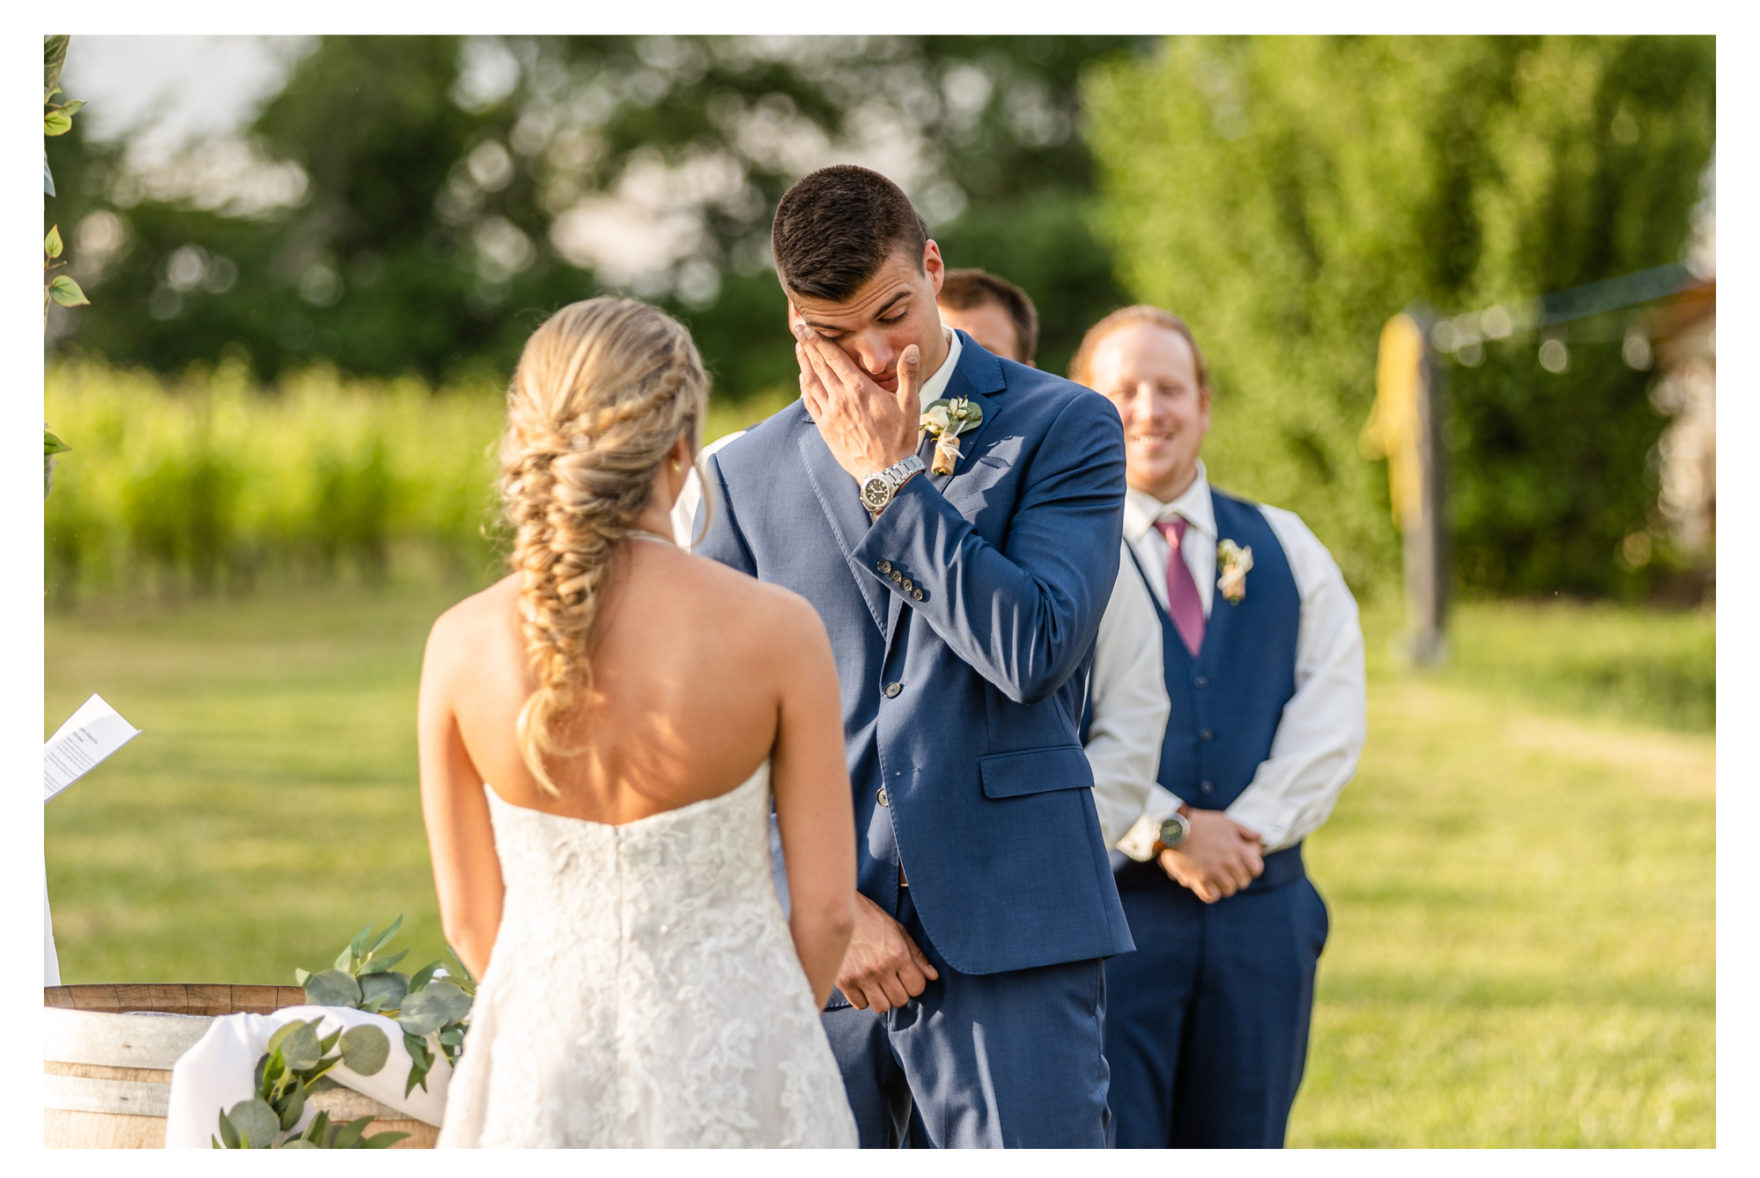 Summer wedding at Black Ankle Winery. Junior best men, gymnast dancing, mauve and navy wedding colors, double rainbow at wedding, sparkler send off